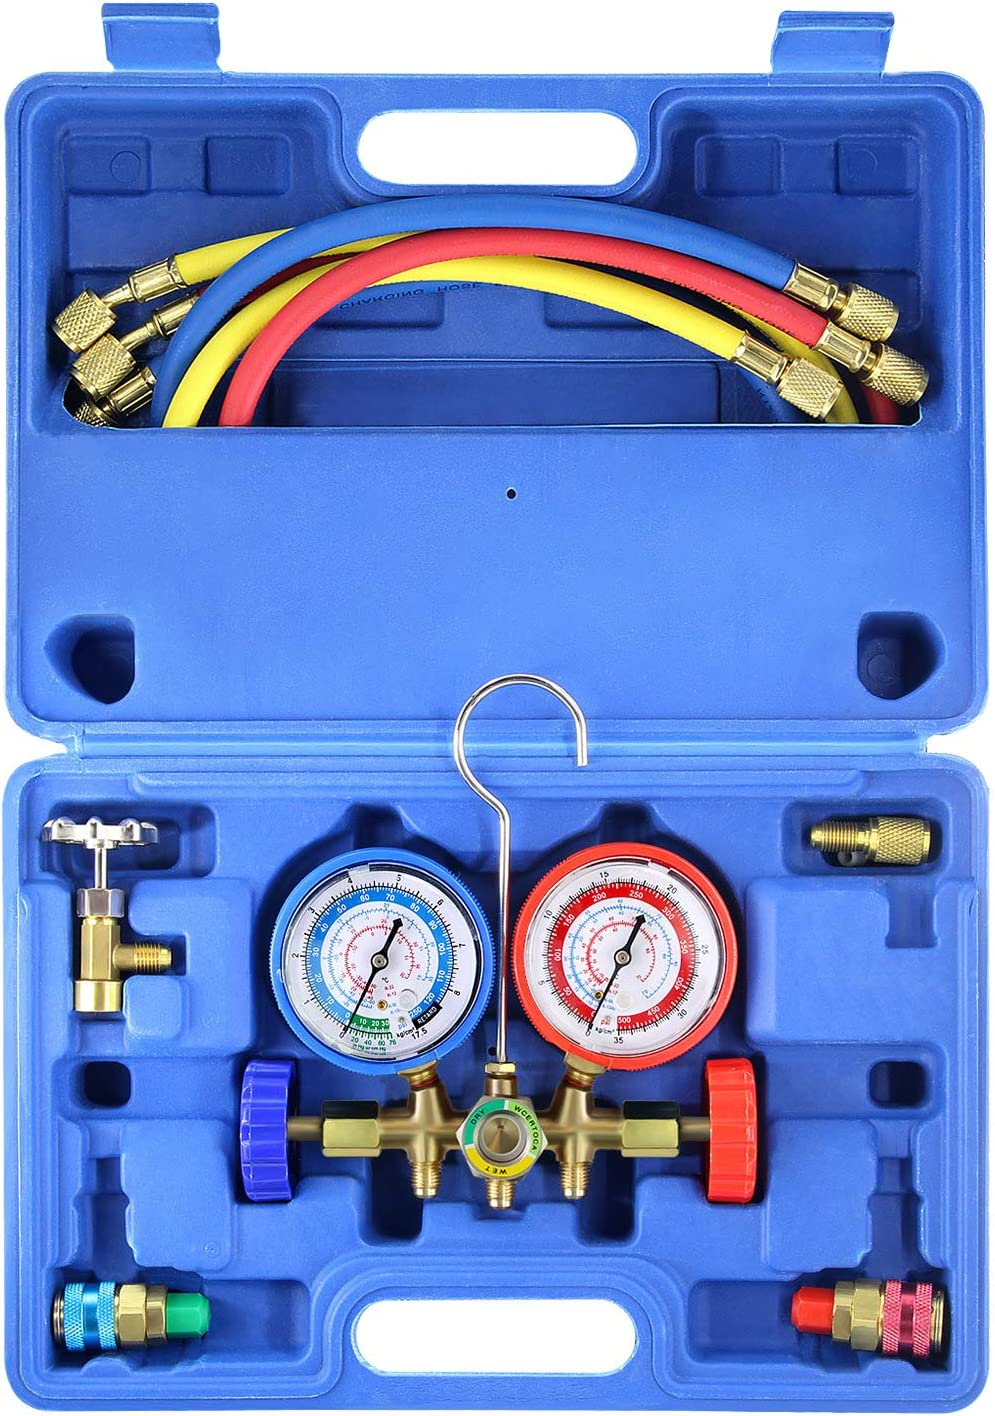 AURELIO TECH MGS-0005-WZ 3 Way A/C Diagnostic Manifold Gauge Set, Fits R134A R12 R22 and R502 Refrigerants, with 5FT Hose, Acme Tank Adapters, Couplers and Can Tap